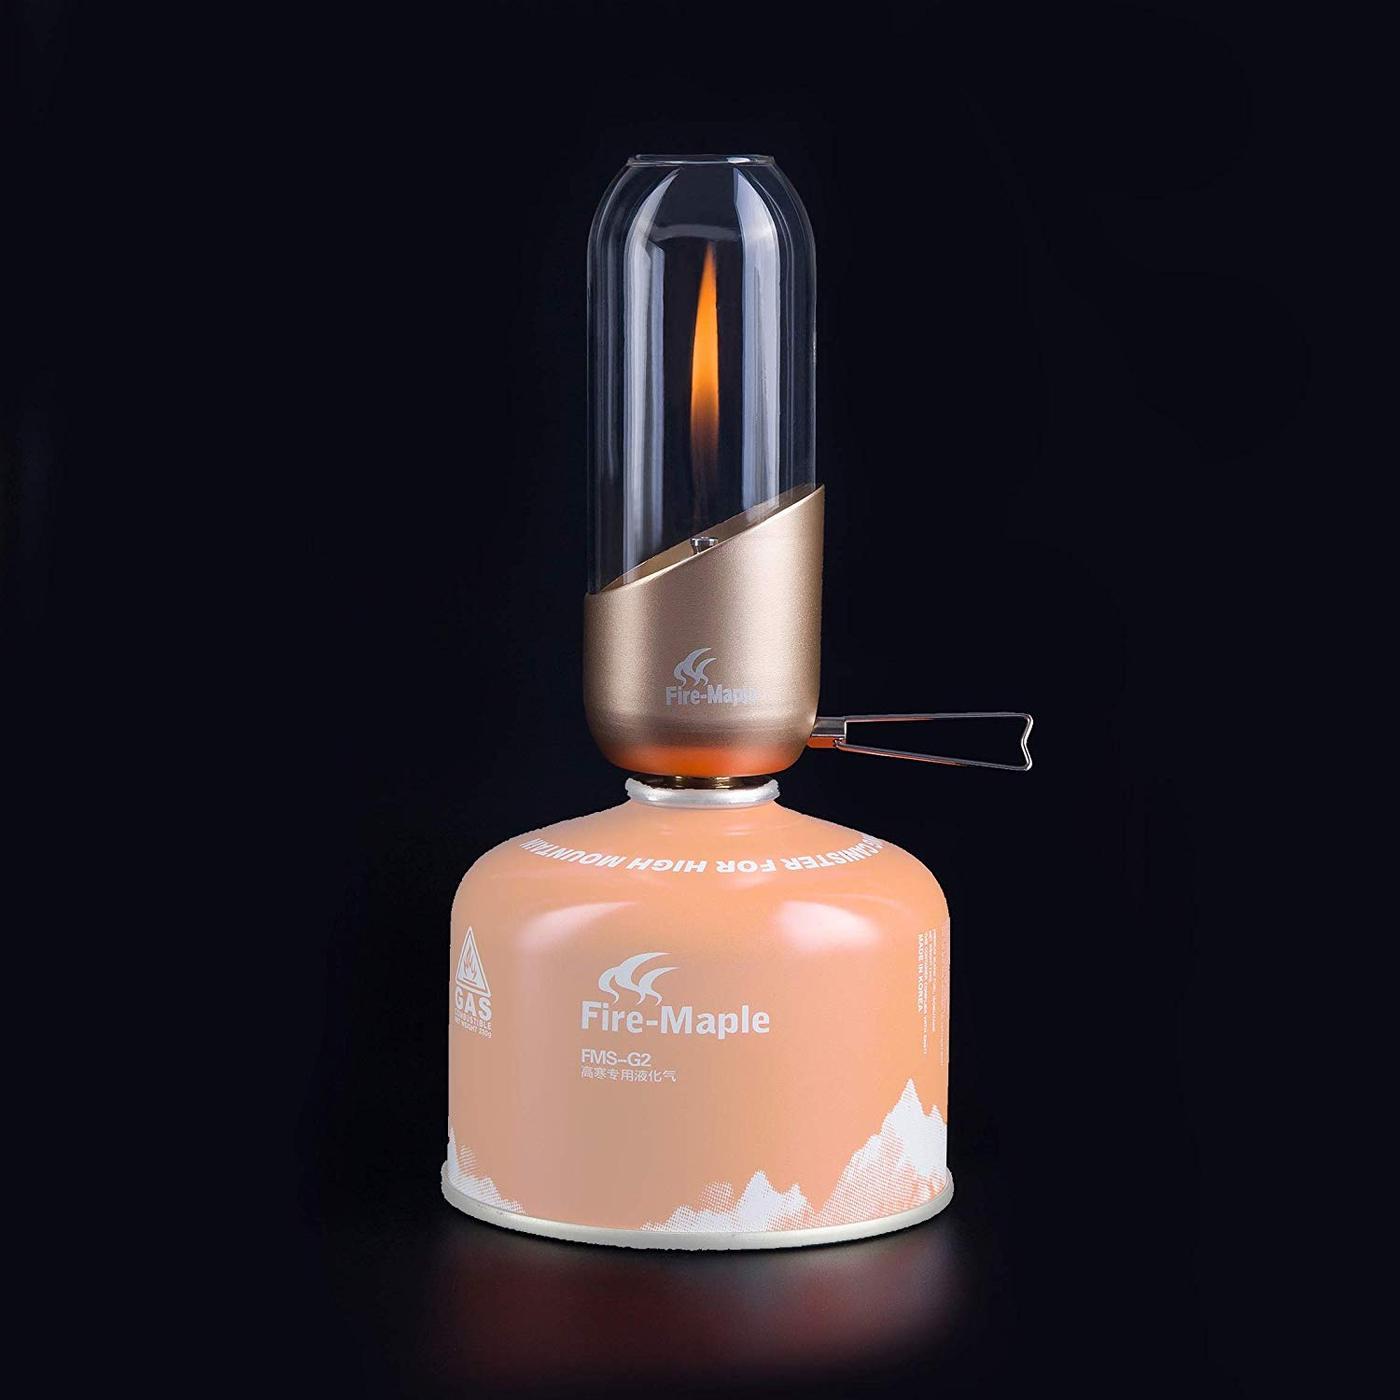 FIRE MAPLE – ĐÈN GAS DÃ NGOẠI ORANGE GAS LANTERN